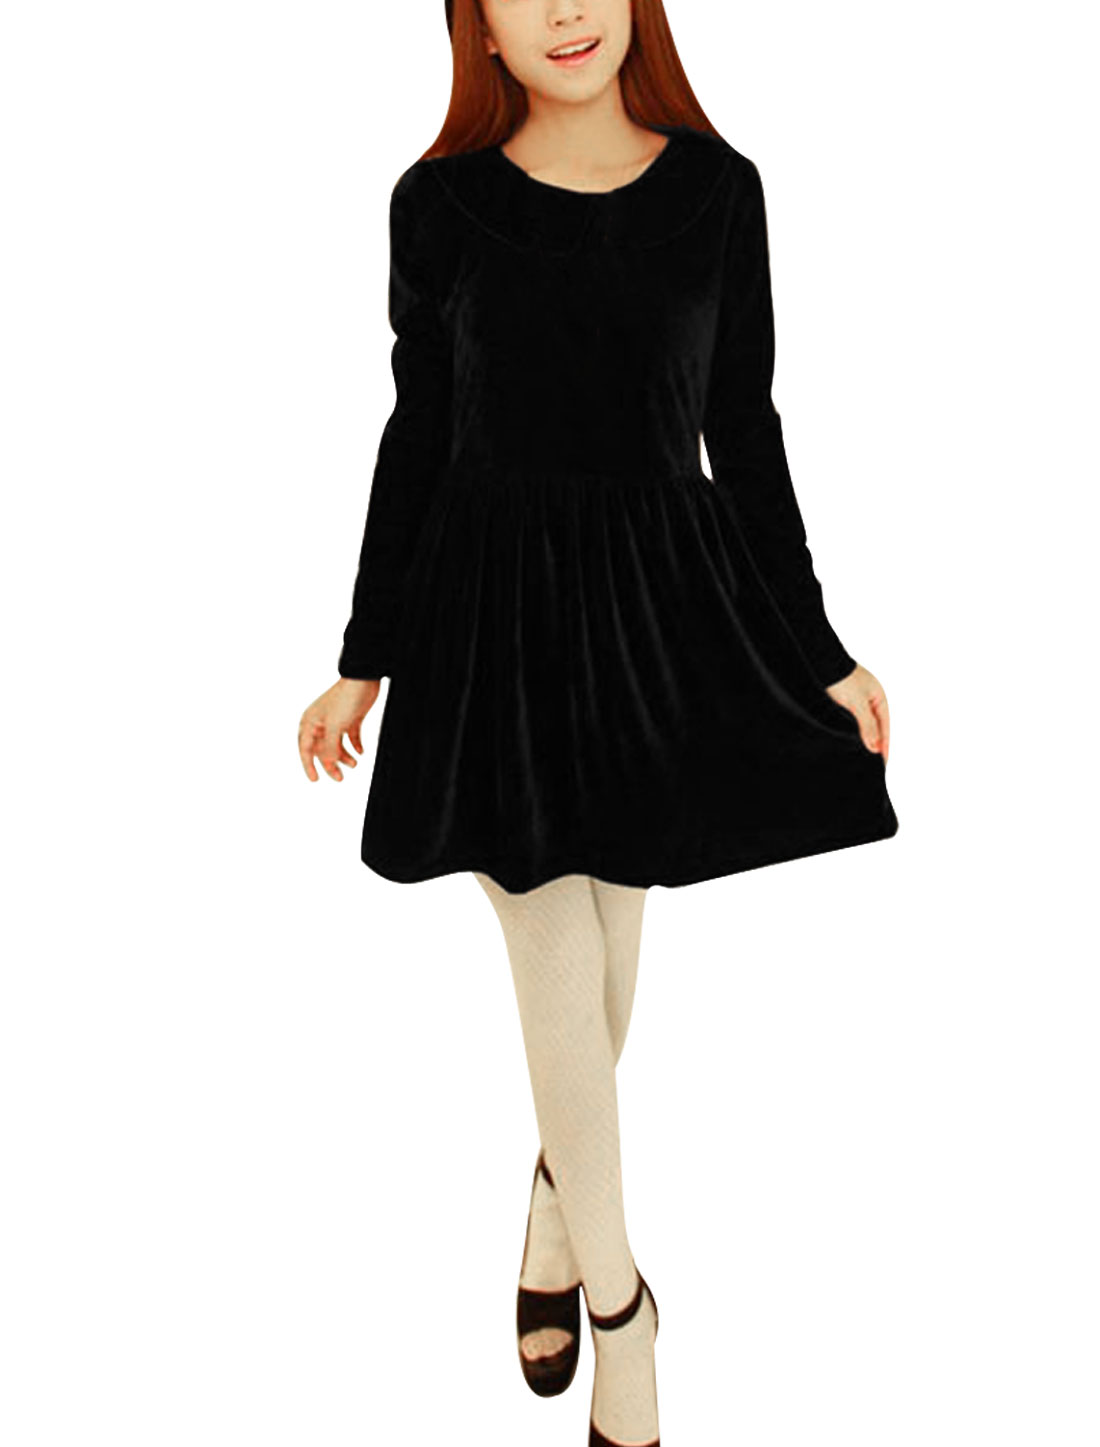 Women's Peter Pan Collar Long Sleeves Stretchy Velvet Black Dress XS